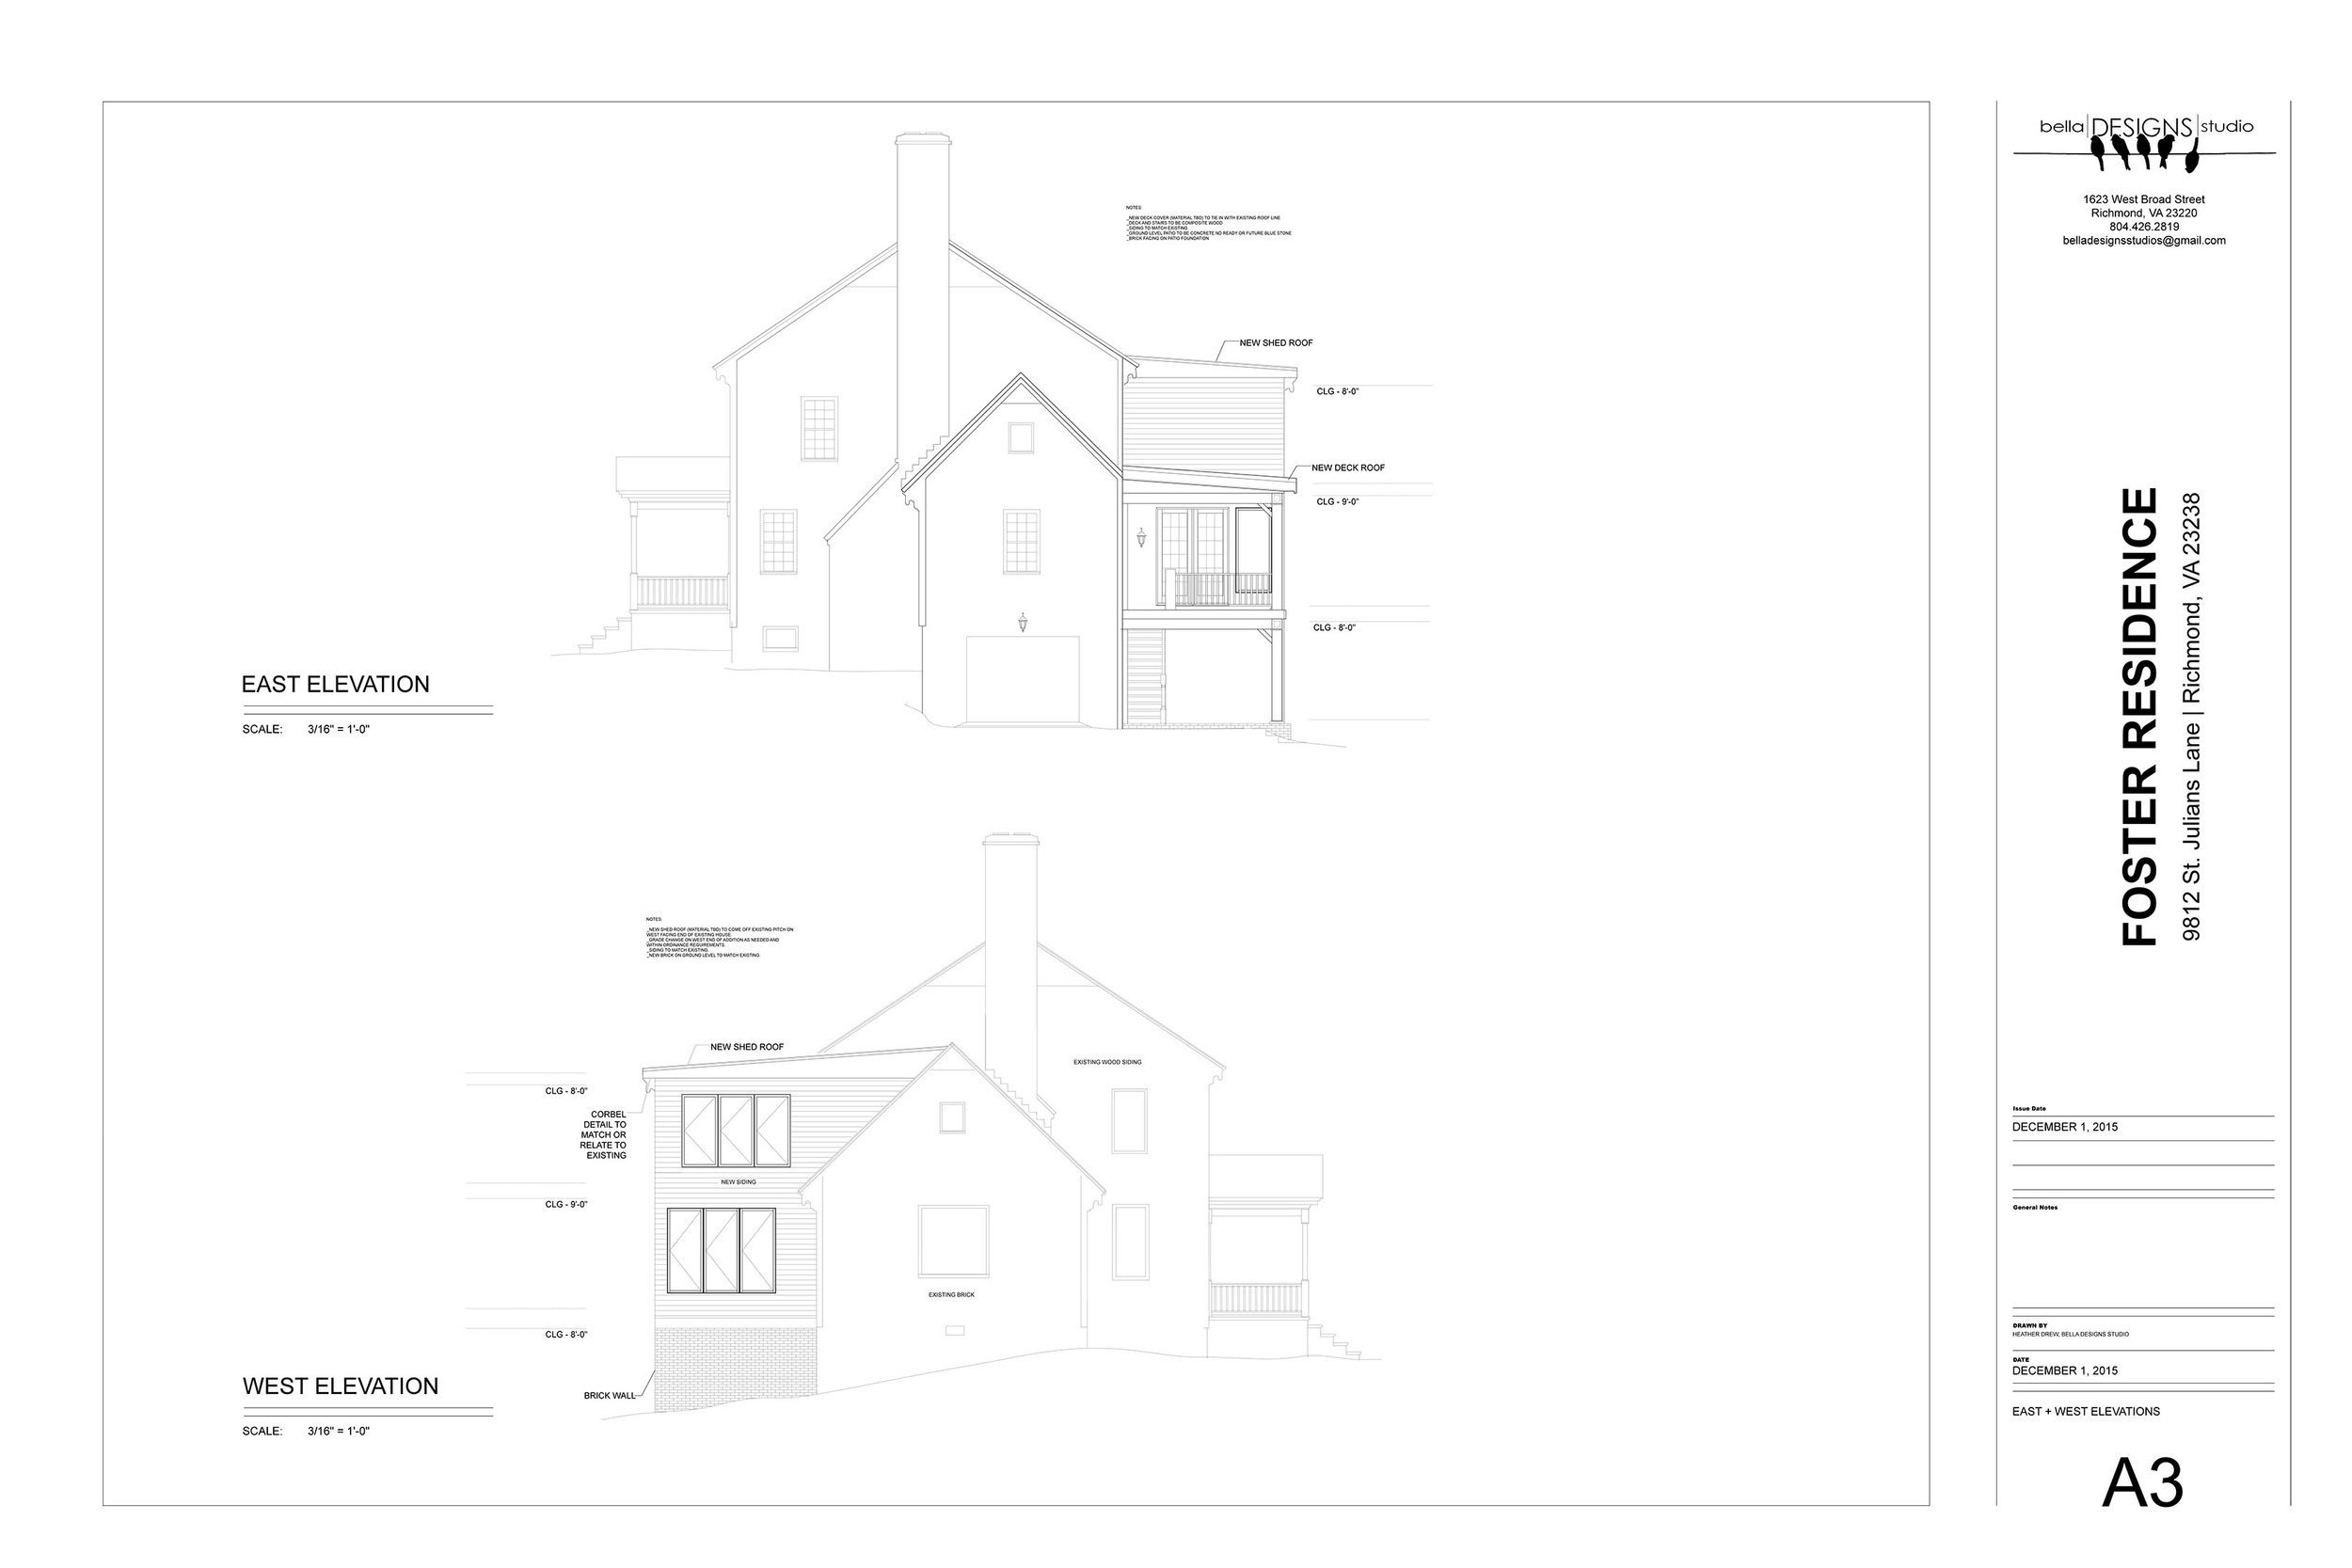 FOSTER_A3_EAST+WEST ELEVATIONS.jpg